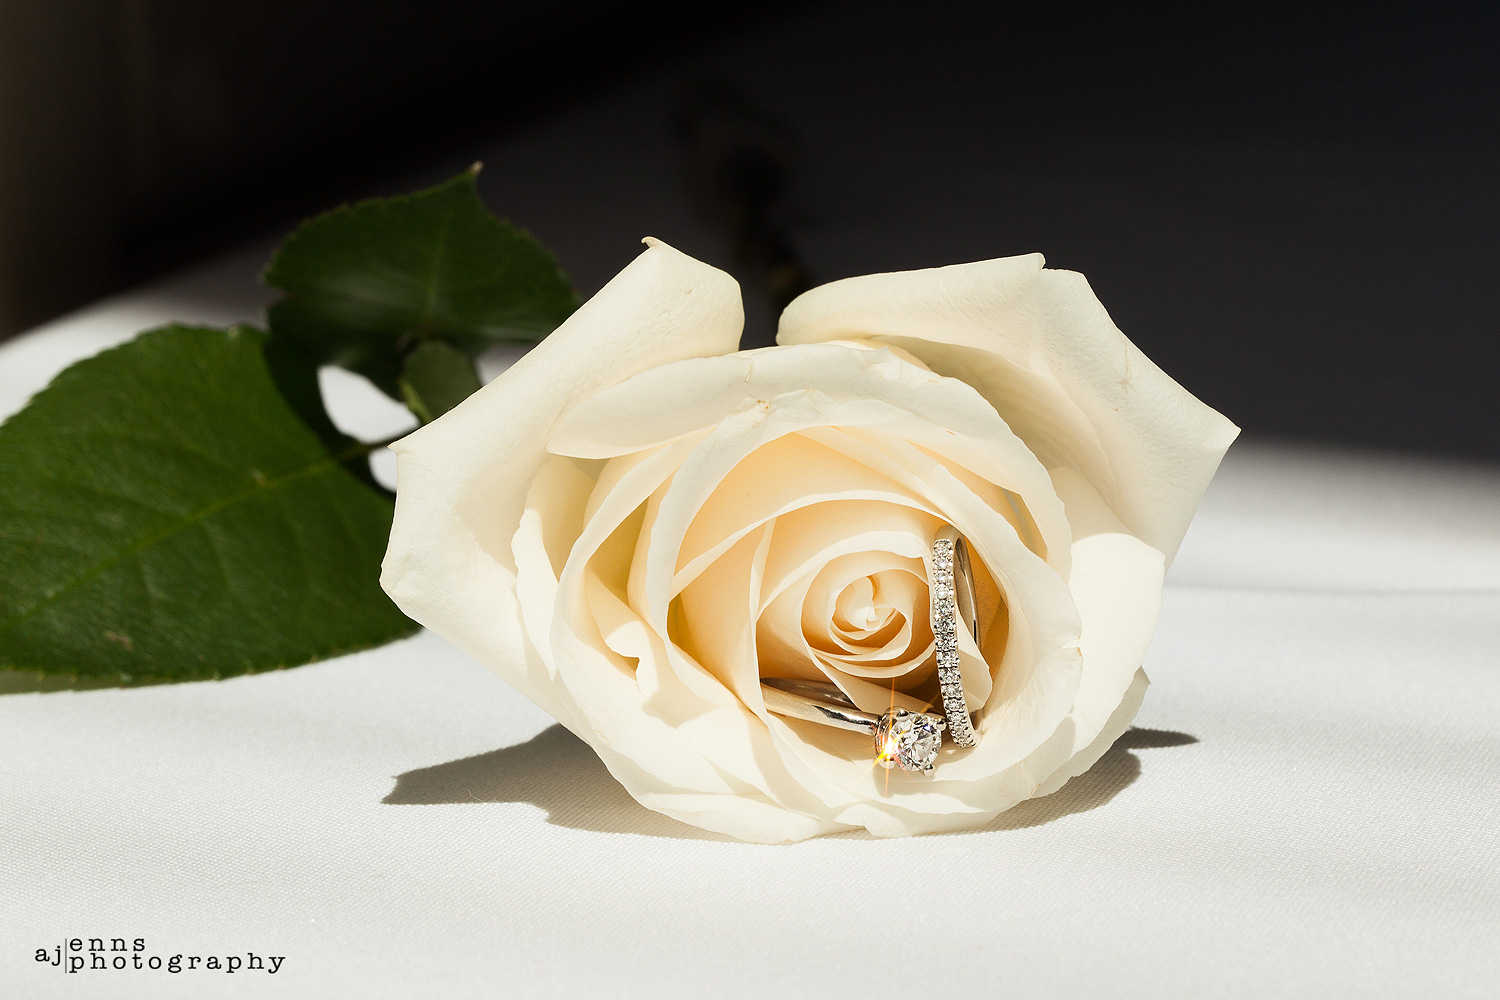 the rings nestled in a white rose for the grooms mother who passed away